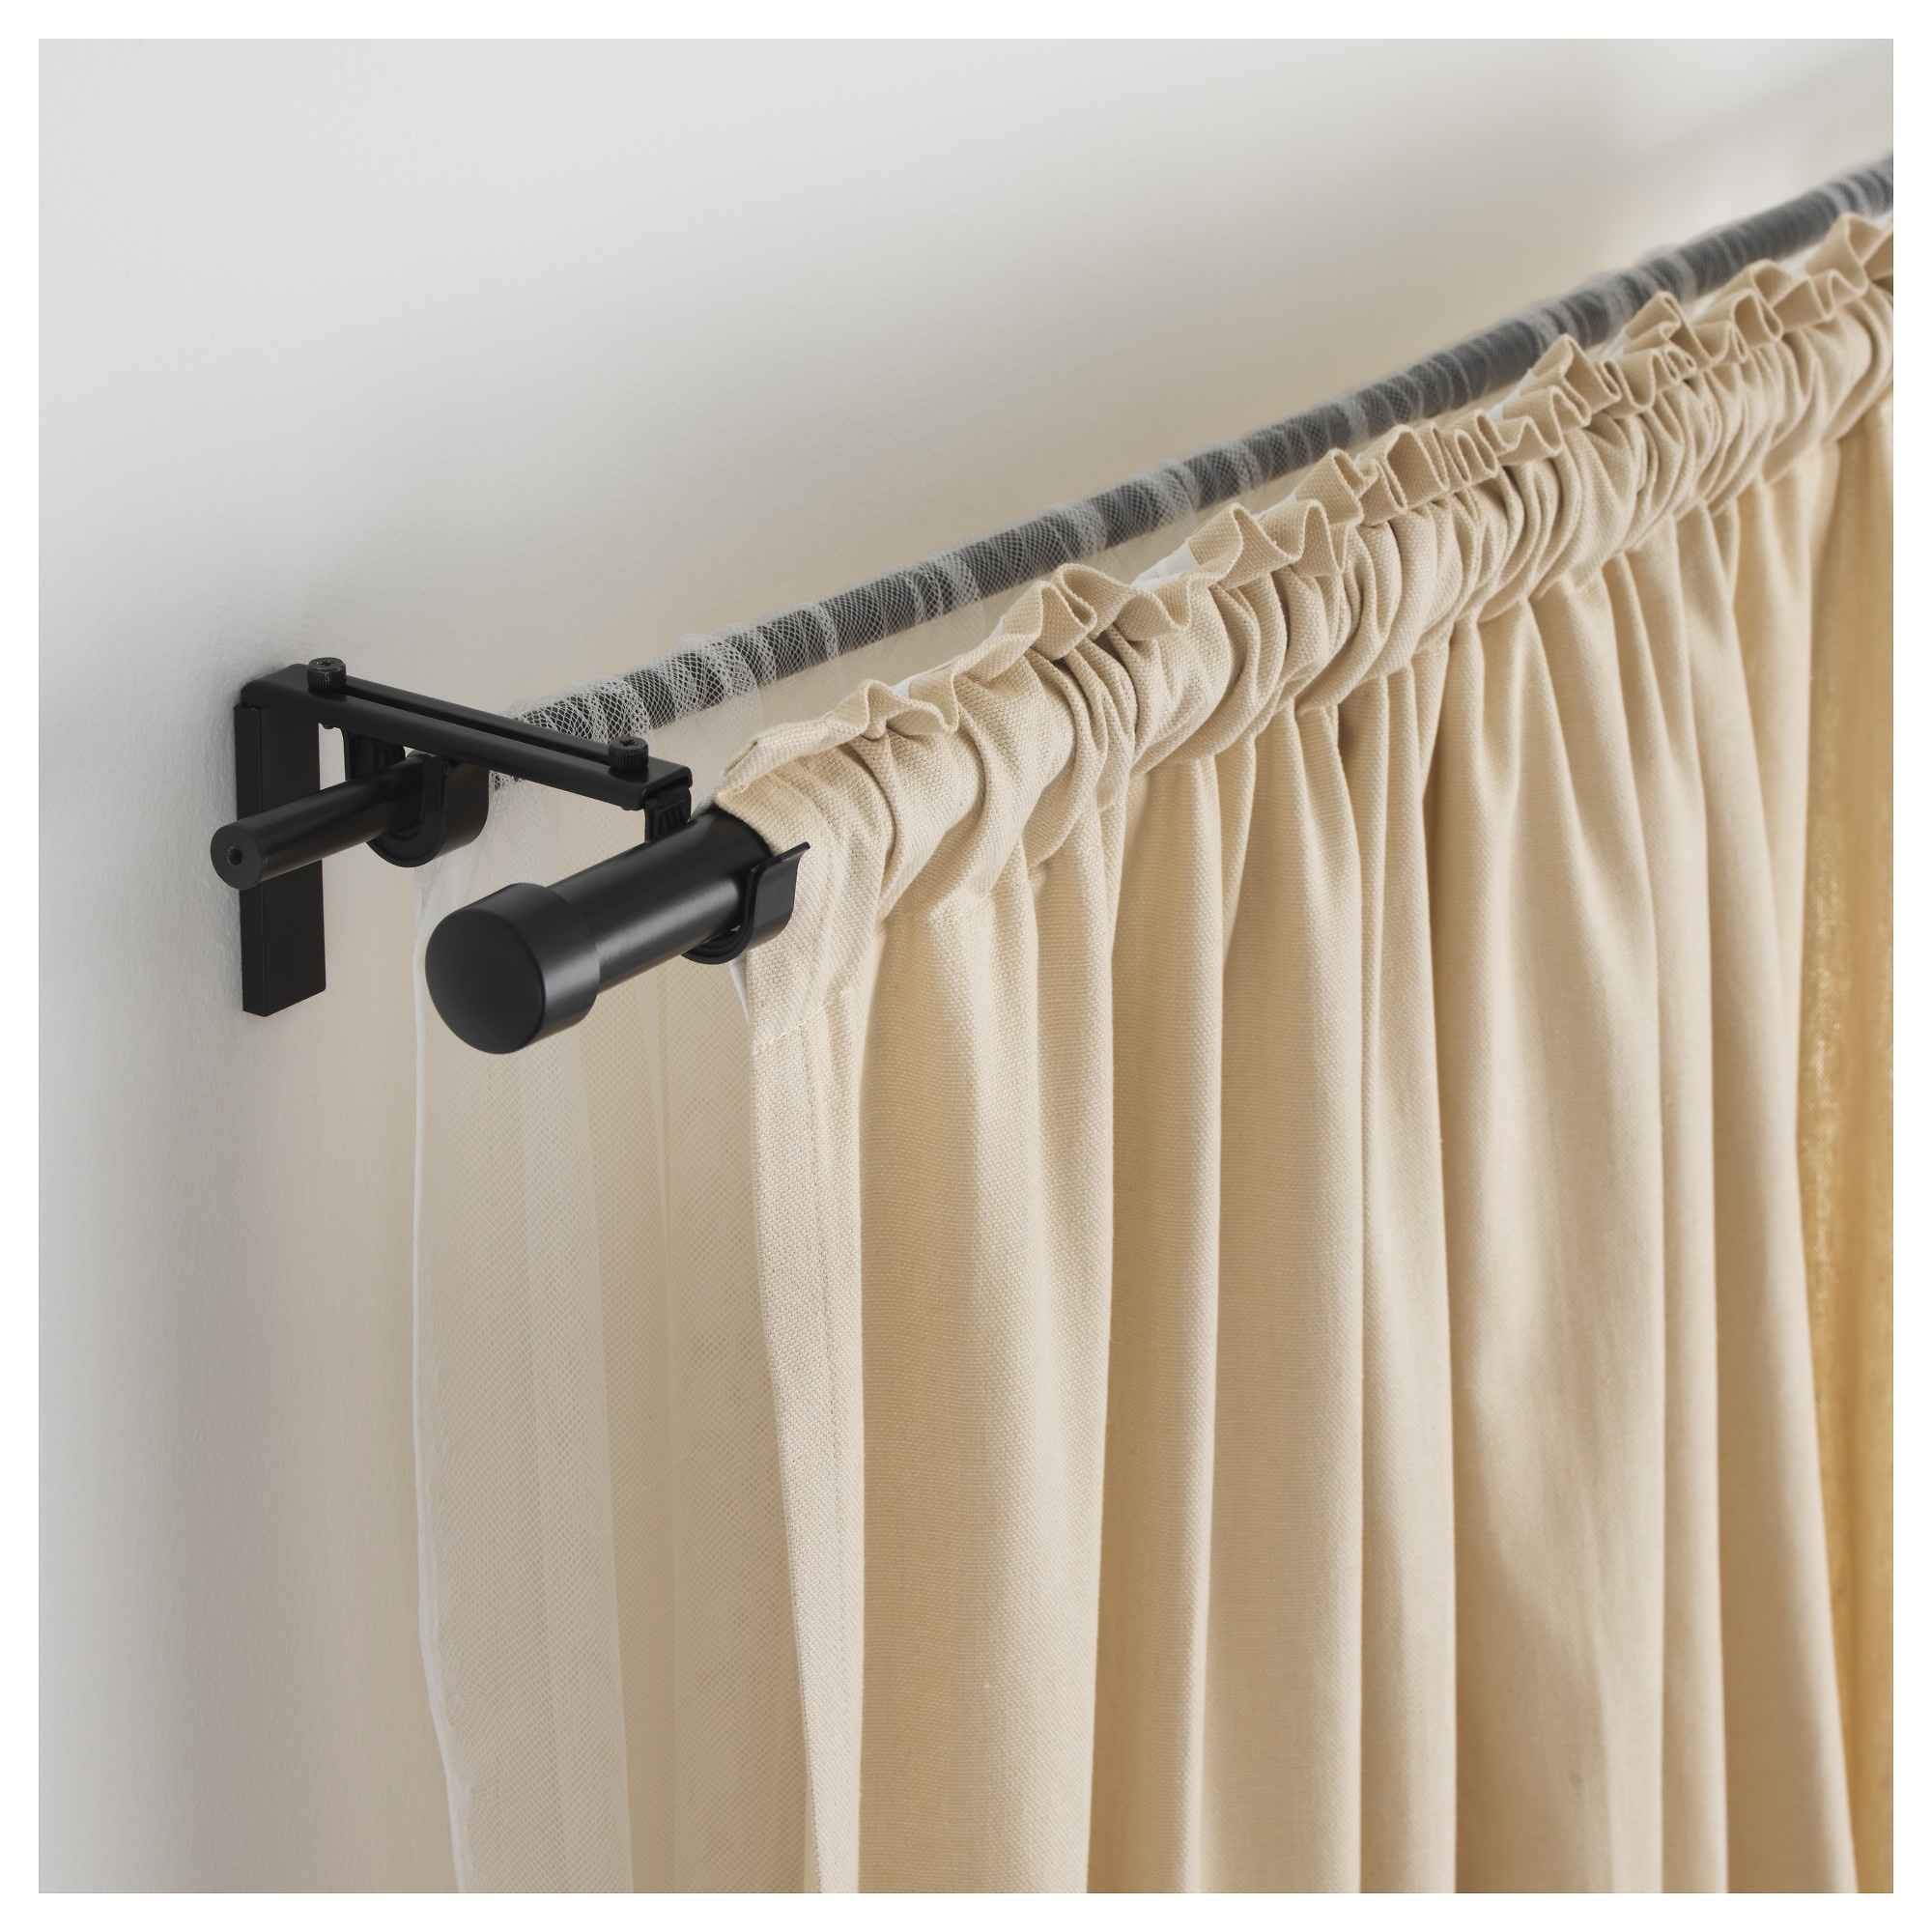 RCKA HUGAD Double Curtain Rod Combination